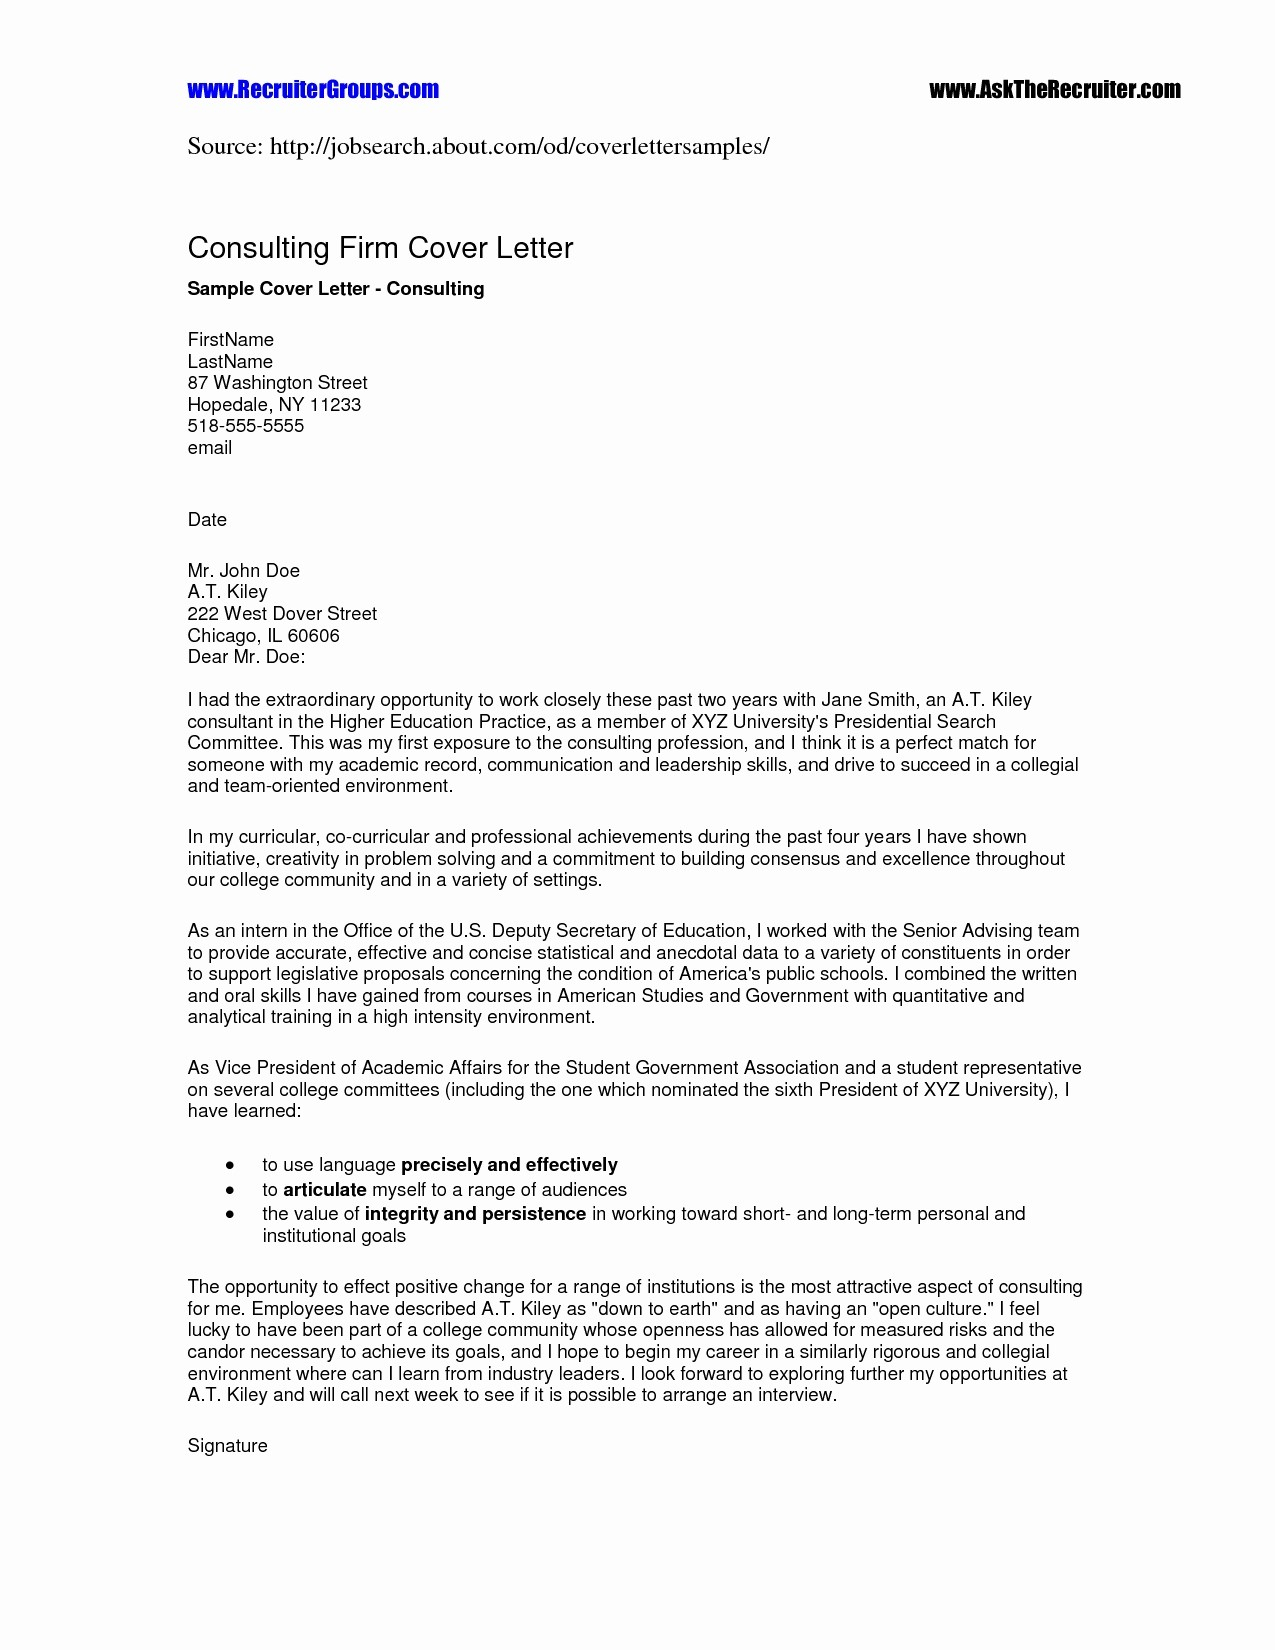 professional reference letter template word Collection-Sample Cover Letter for Good Conduct Certificate Fresh Reference Letter Template Word Templates Trakore Document Templates 18-o